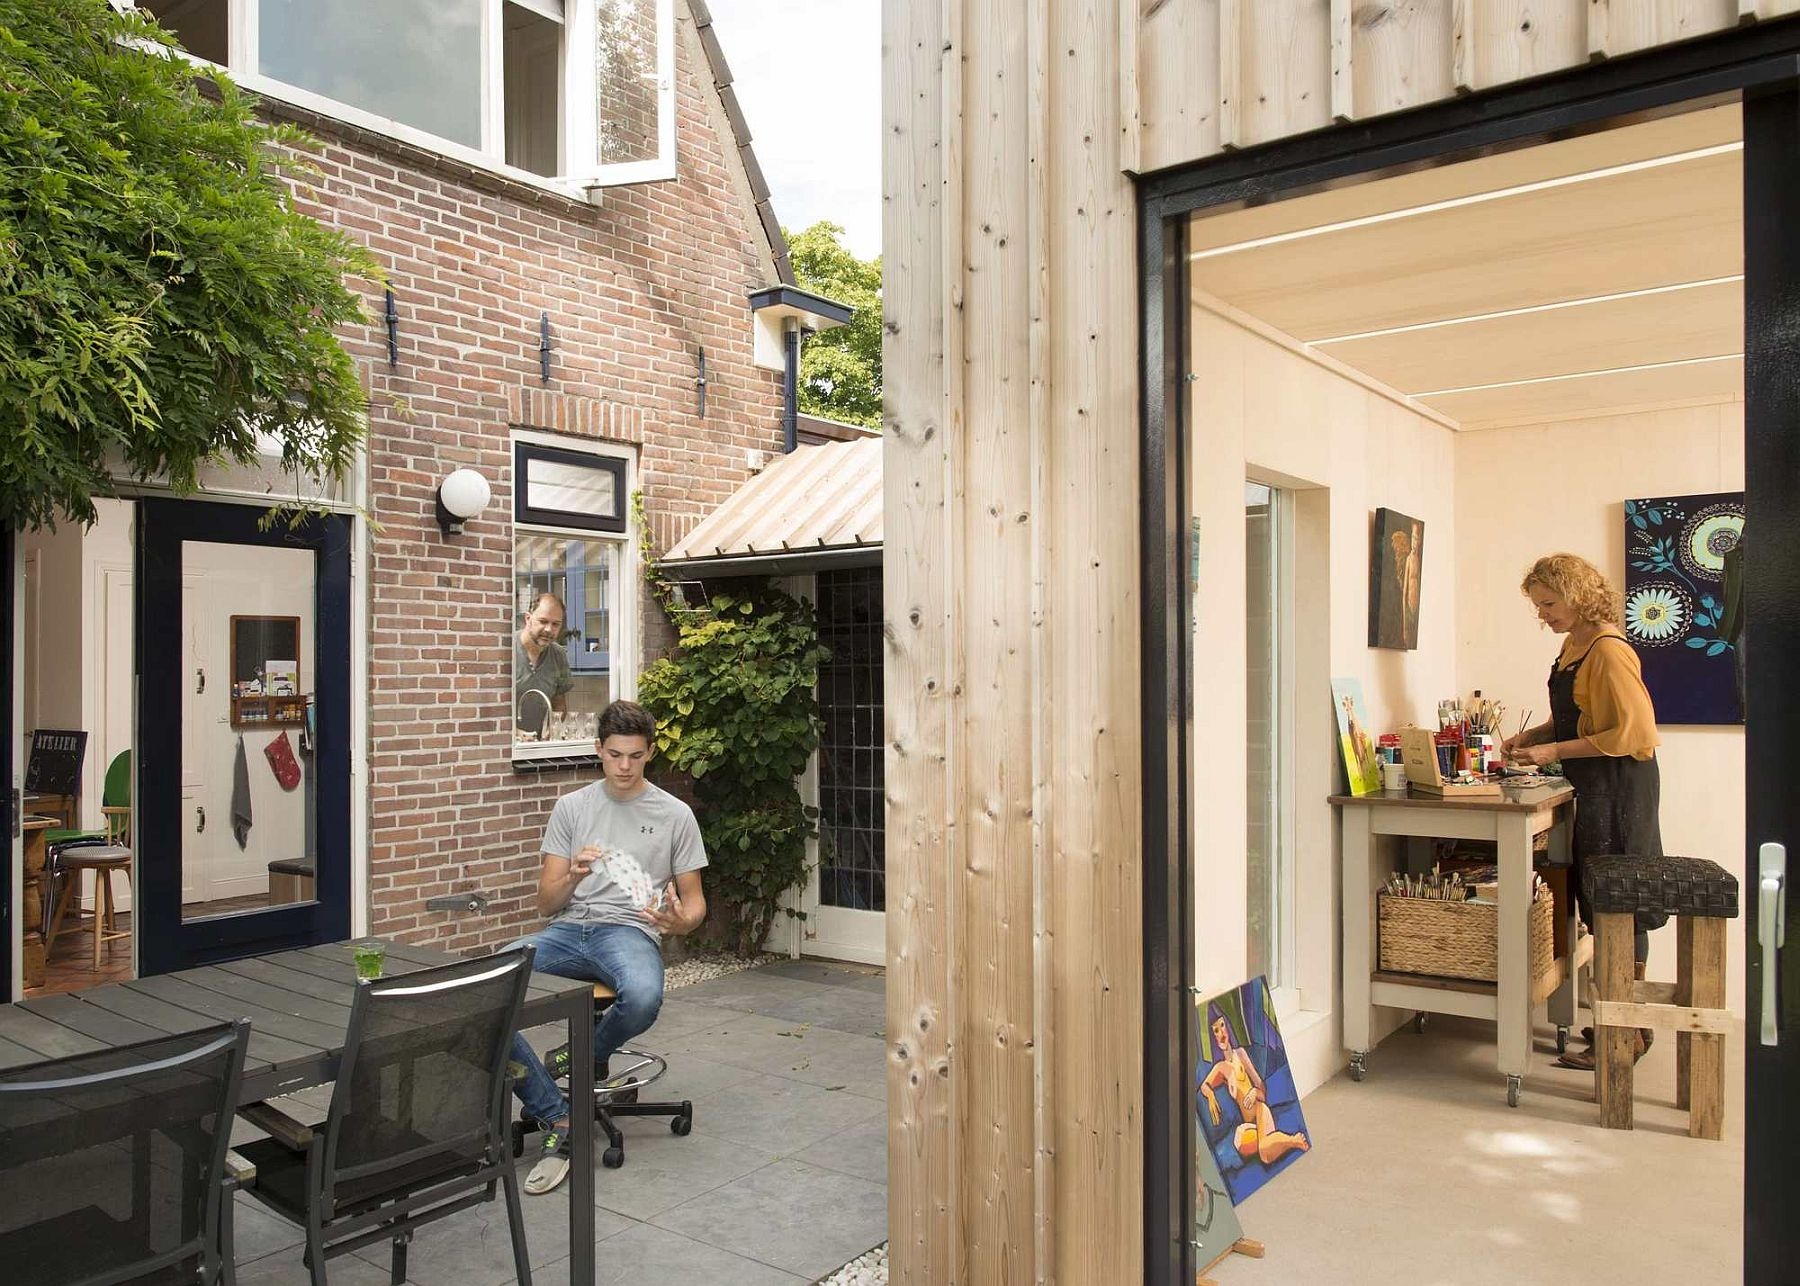 Renovated modern home and painting studio in The Netherlands